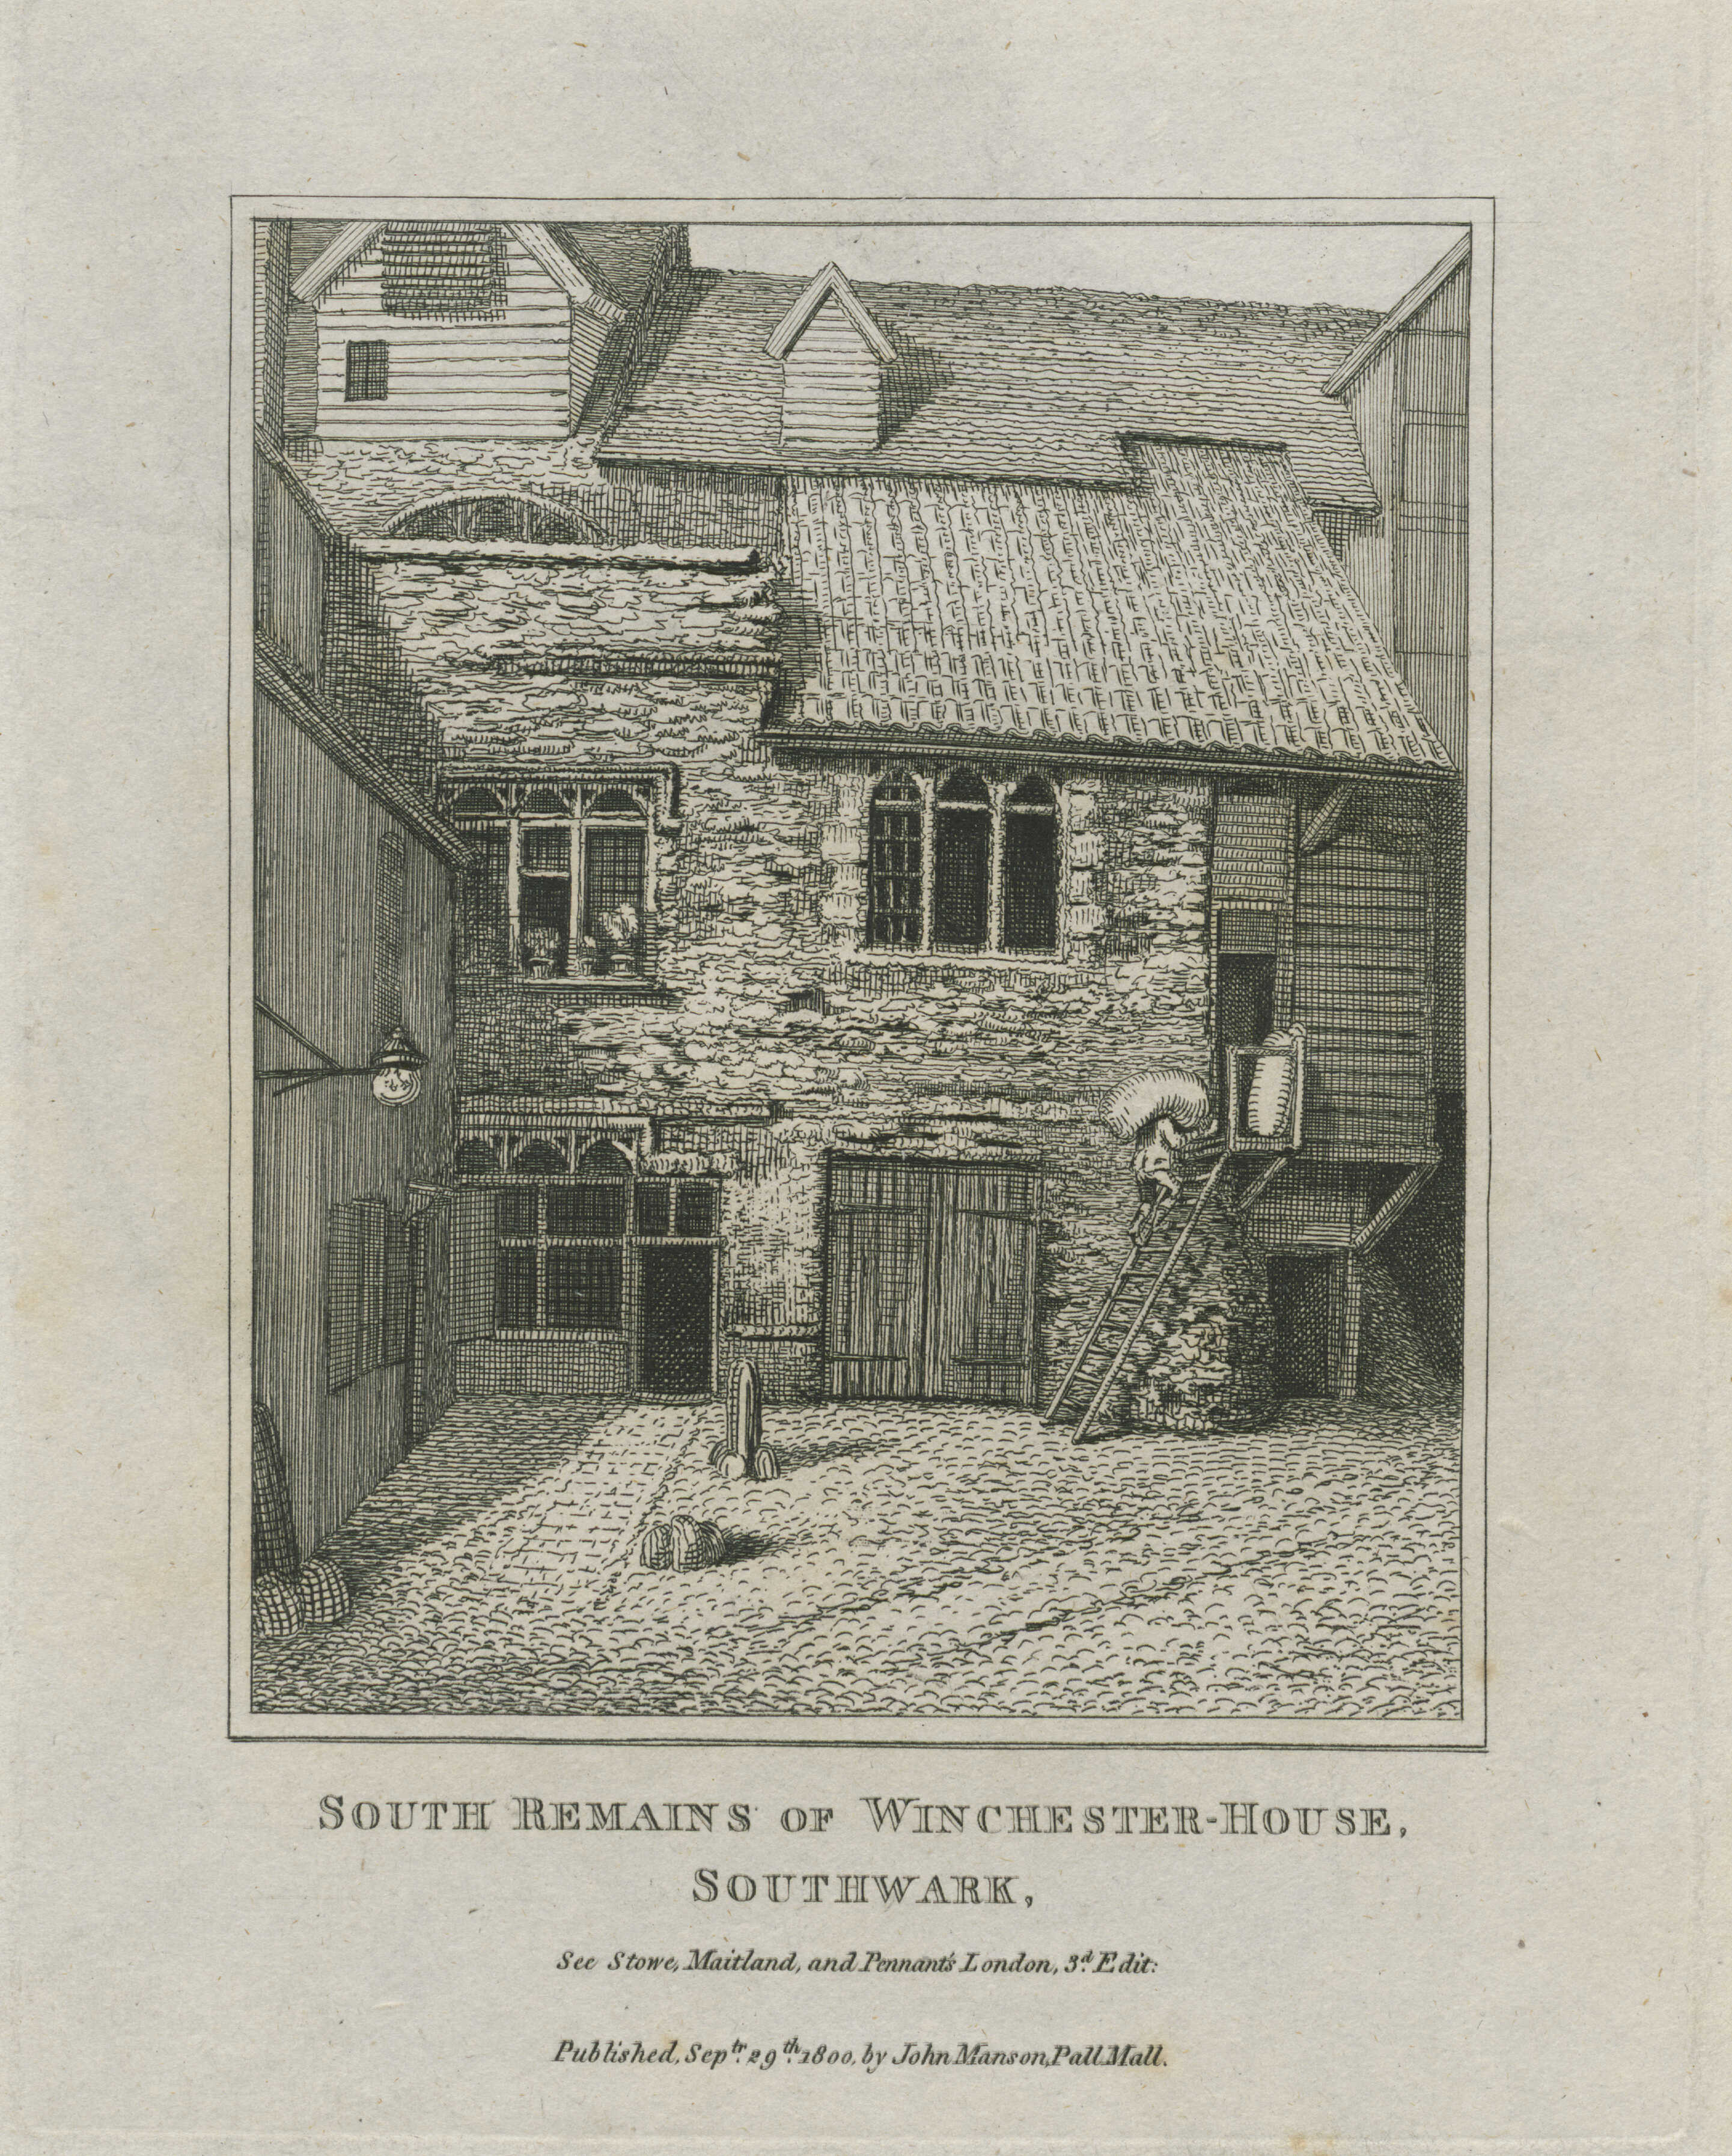 91-south-remains-of-winchester-house-southwark